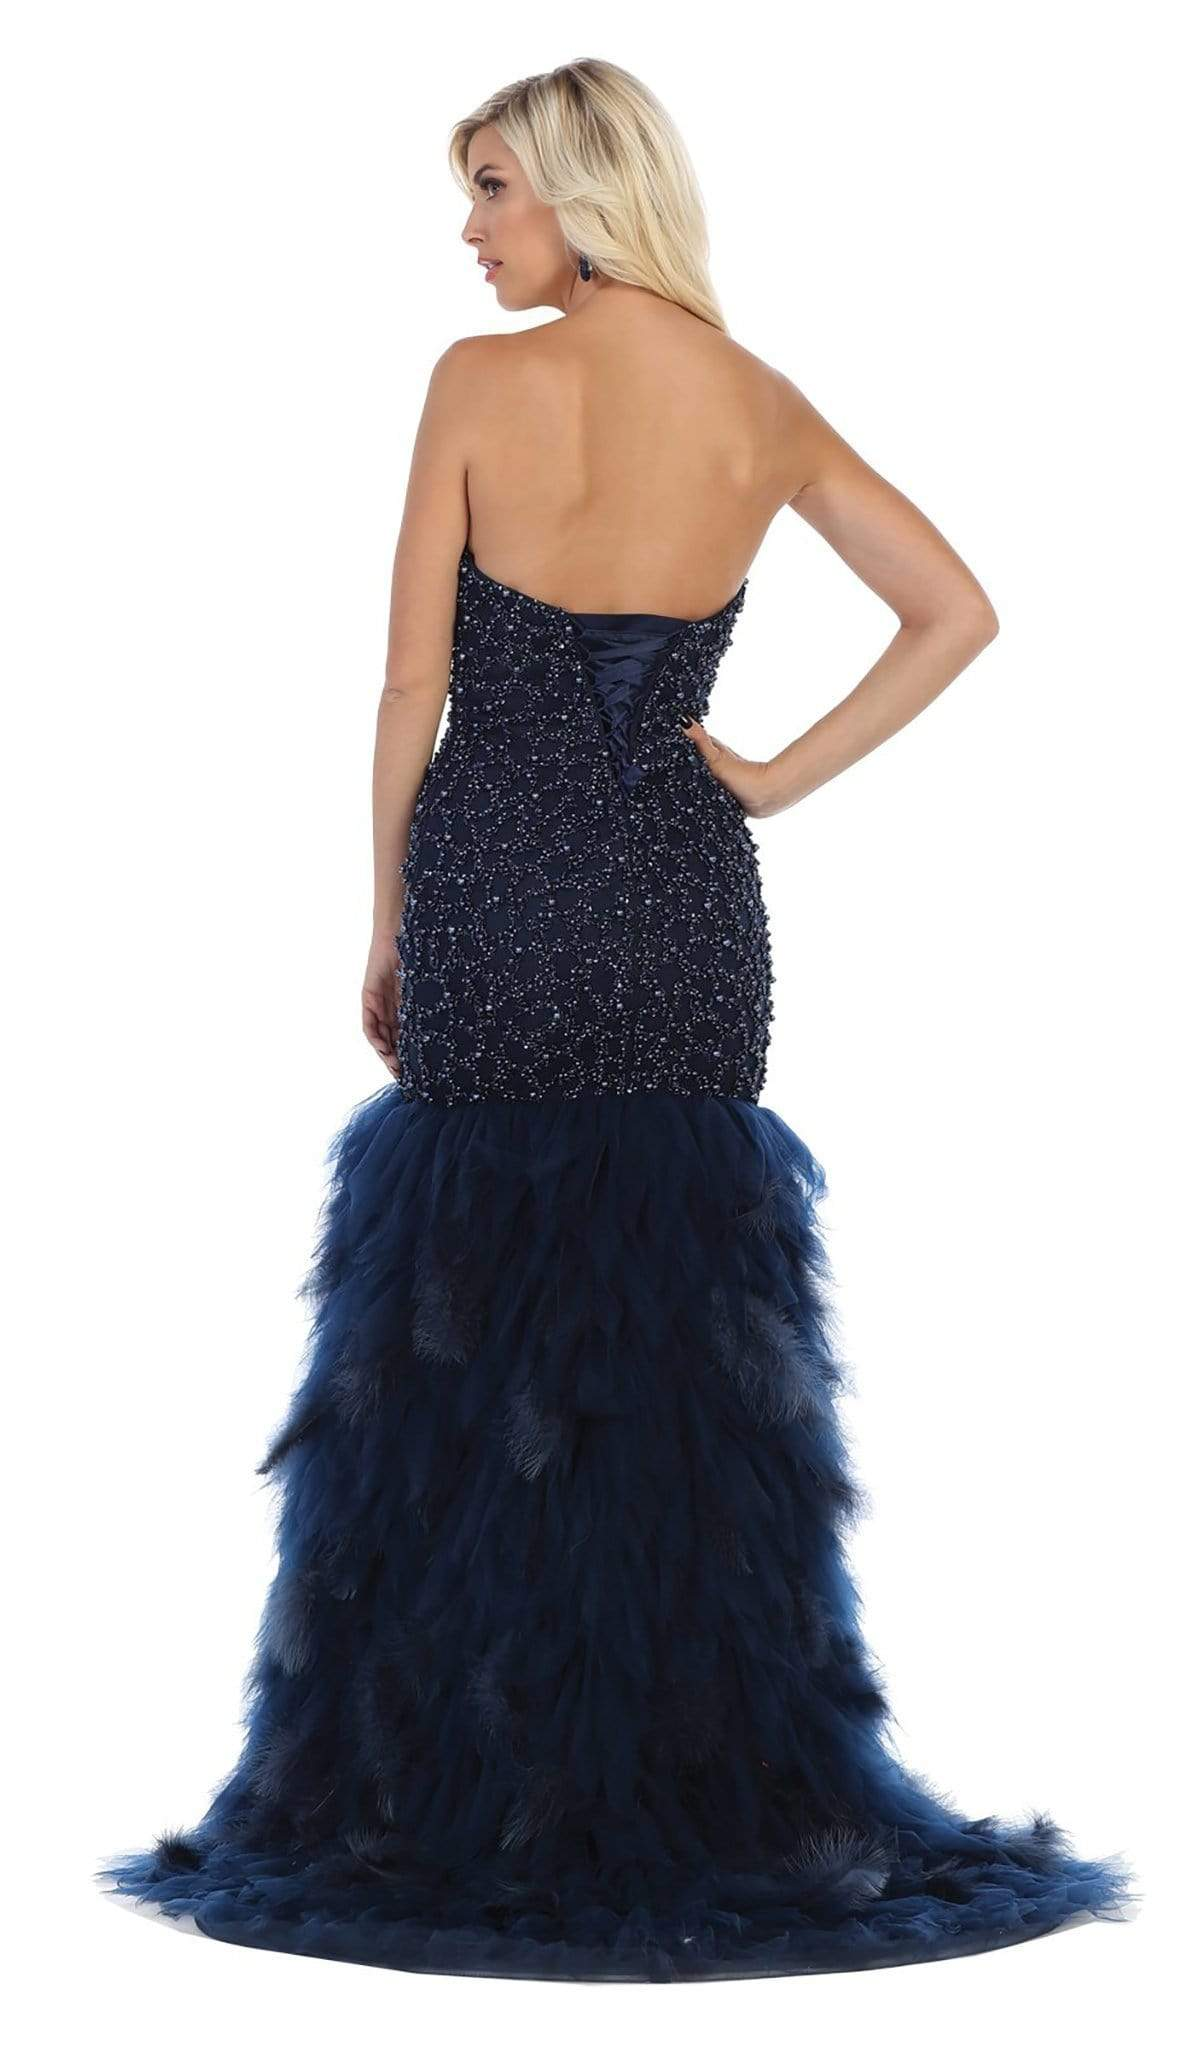 May Queen - Strapless Bead-Ornate Feathered Tulle Gown RQ7668 - 1 pc Champagne In Size 6 Available CCSALE